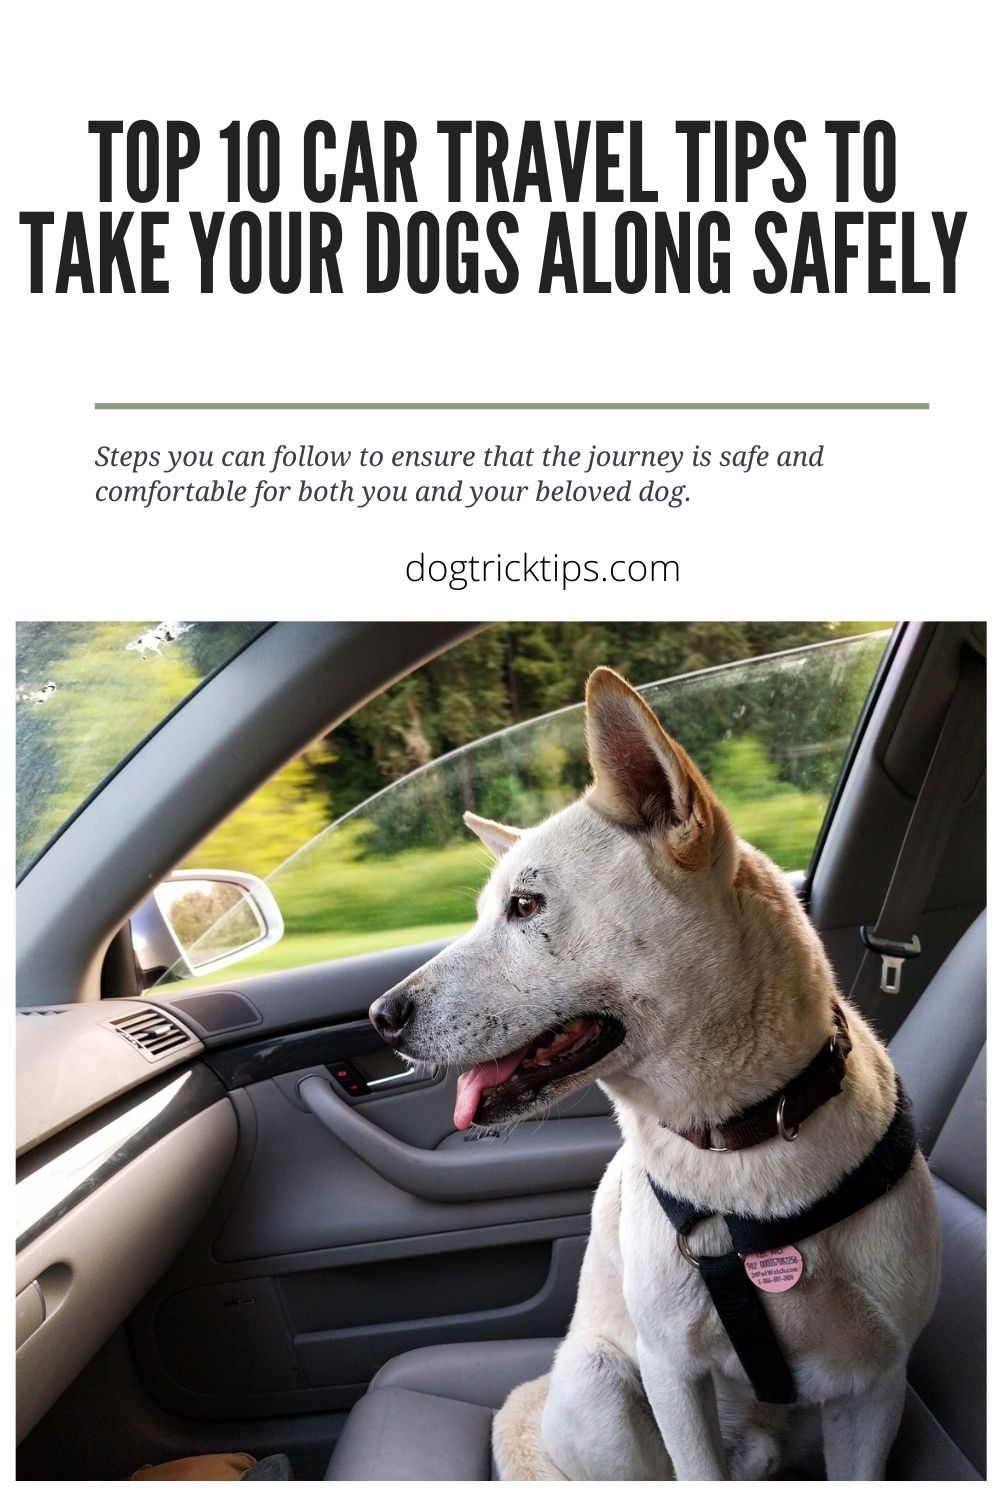 Top 10 Car Travel Tips to Take Your Dogs Along Safely